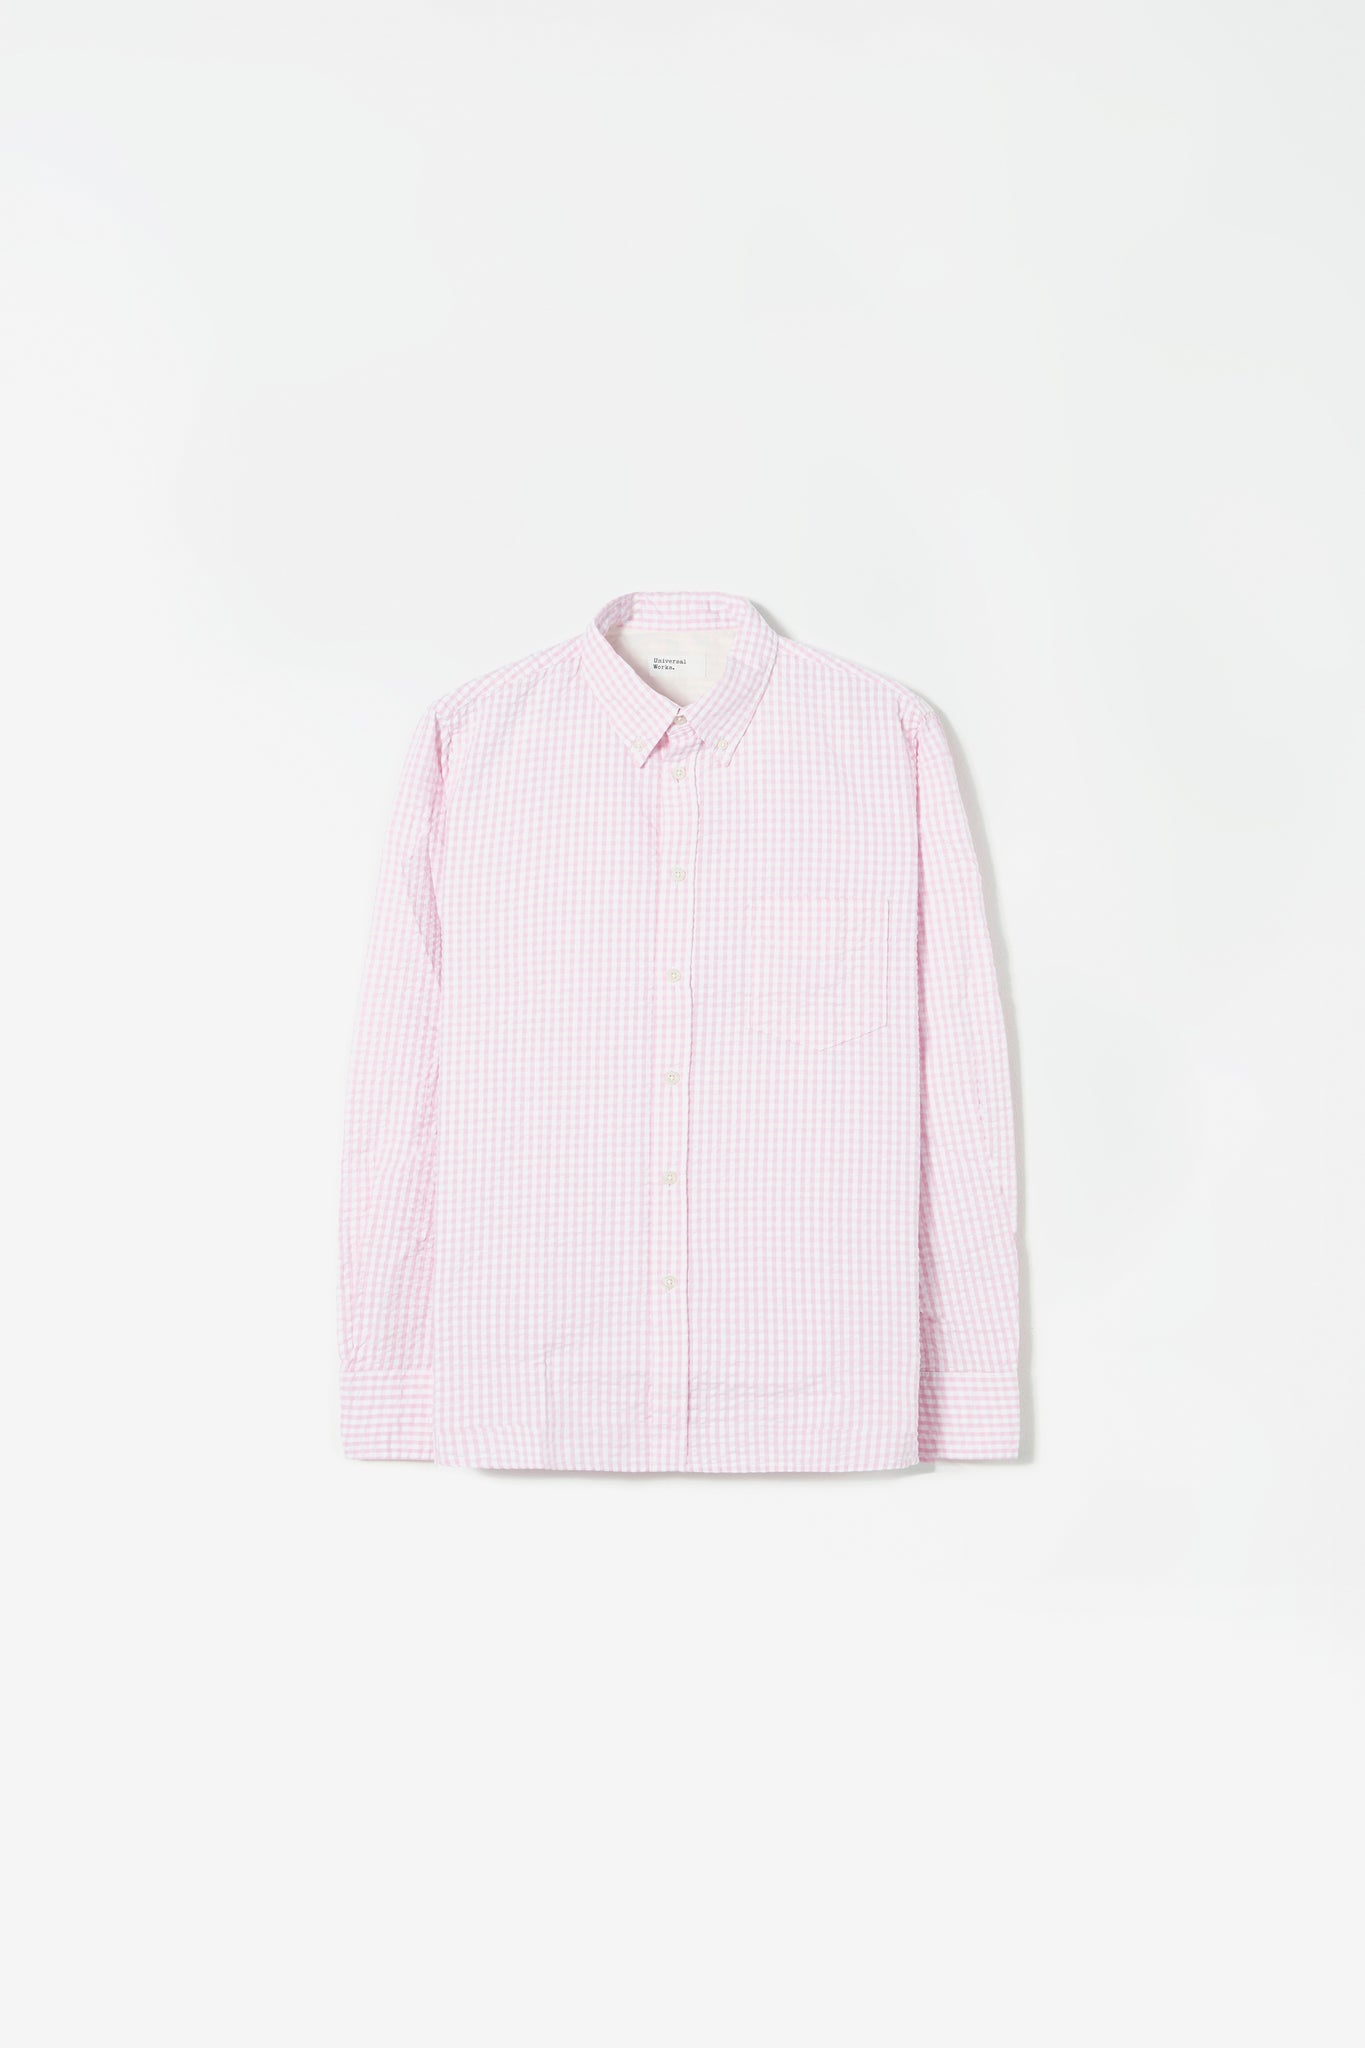 Everyday shirt gingham seersucker pink